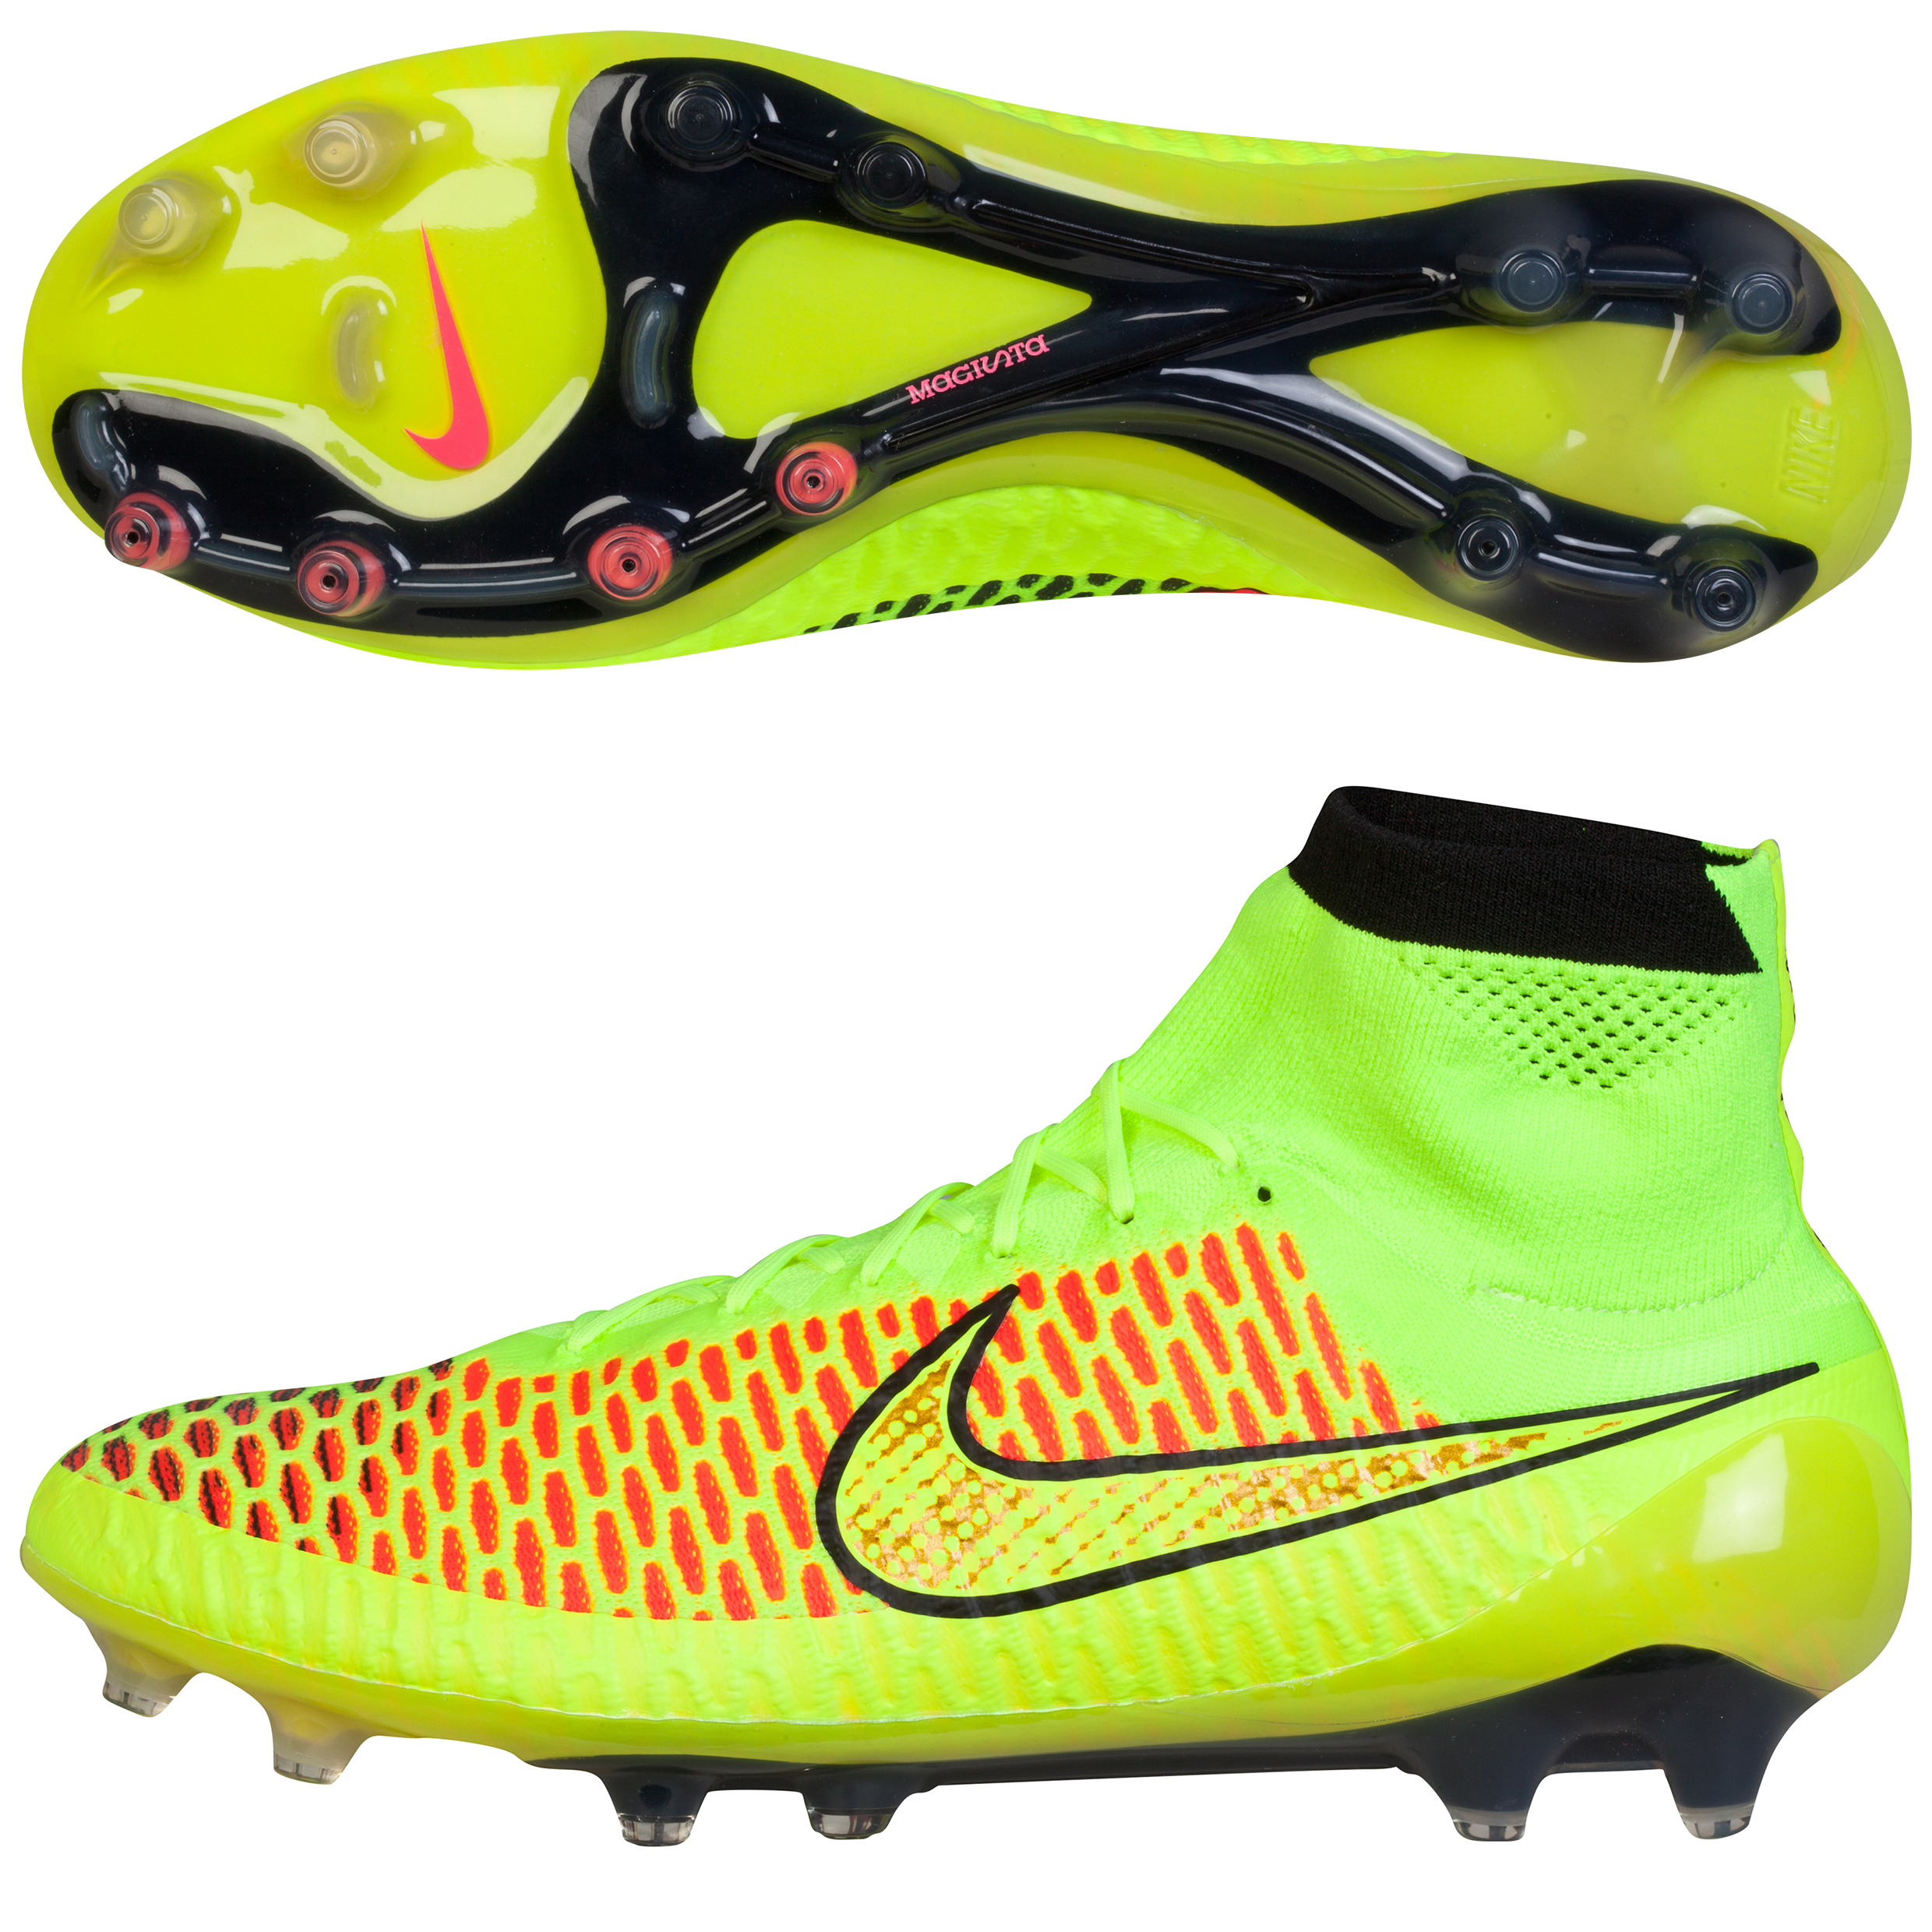 Nike Magista Obra Firm Ground Football Boots Yellow